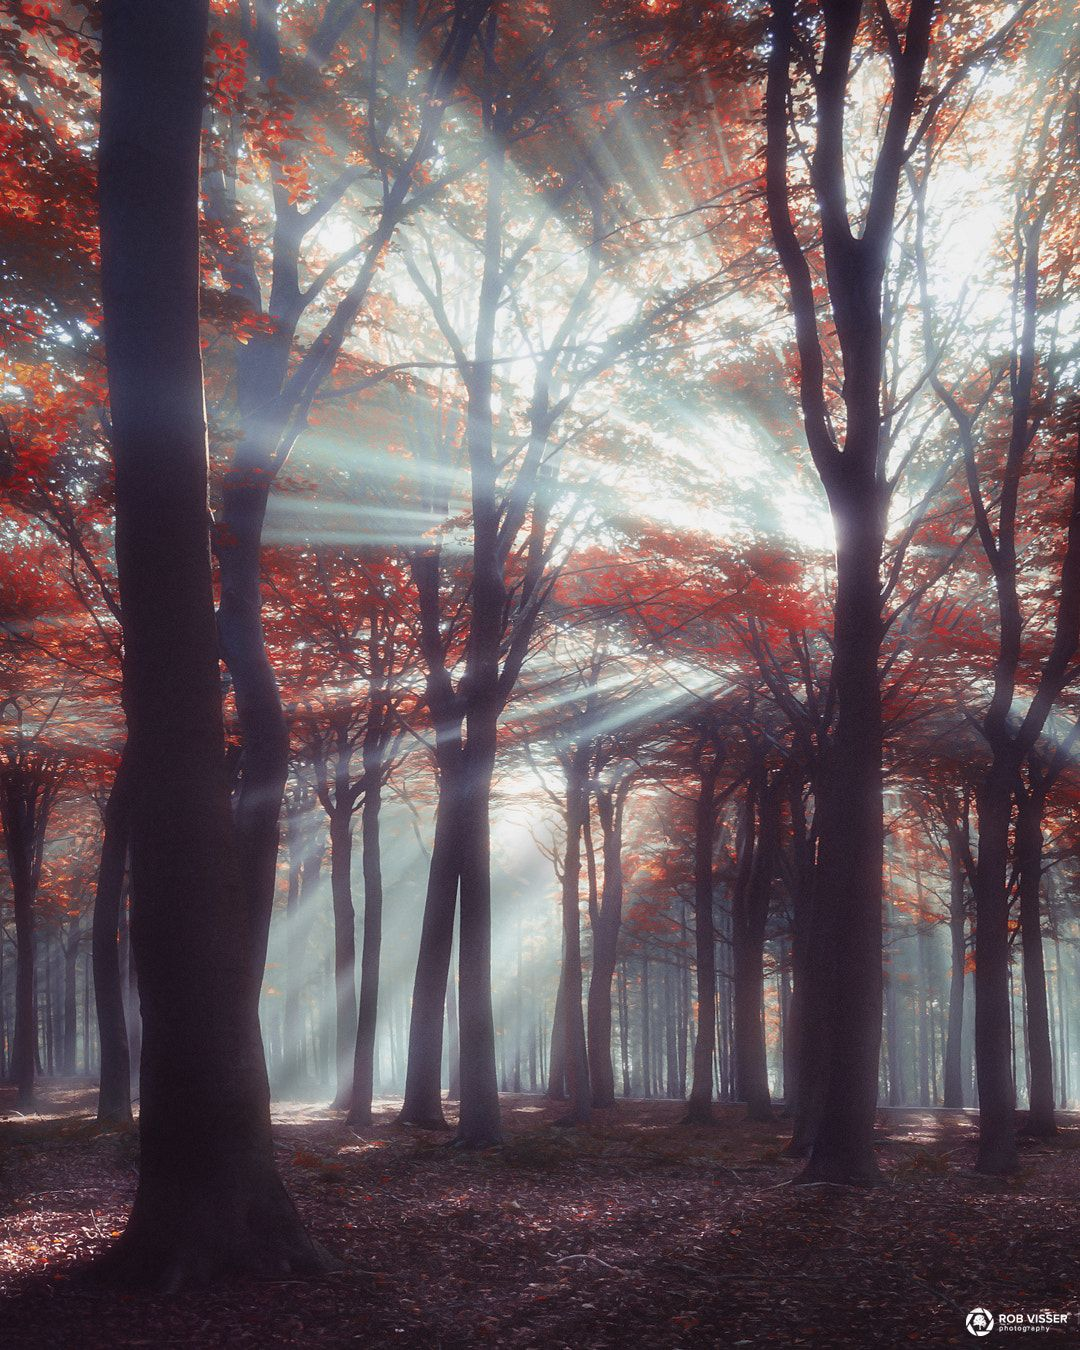 Blown out - Sunrays piercing through an autumn forest in the Netherlands.